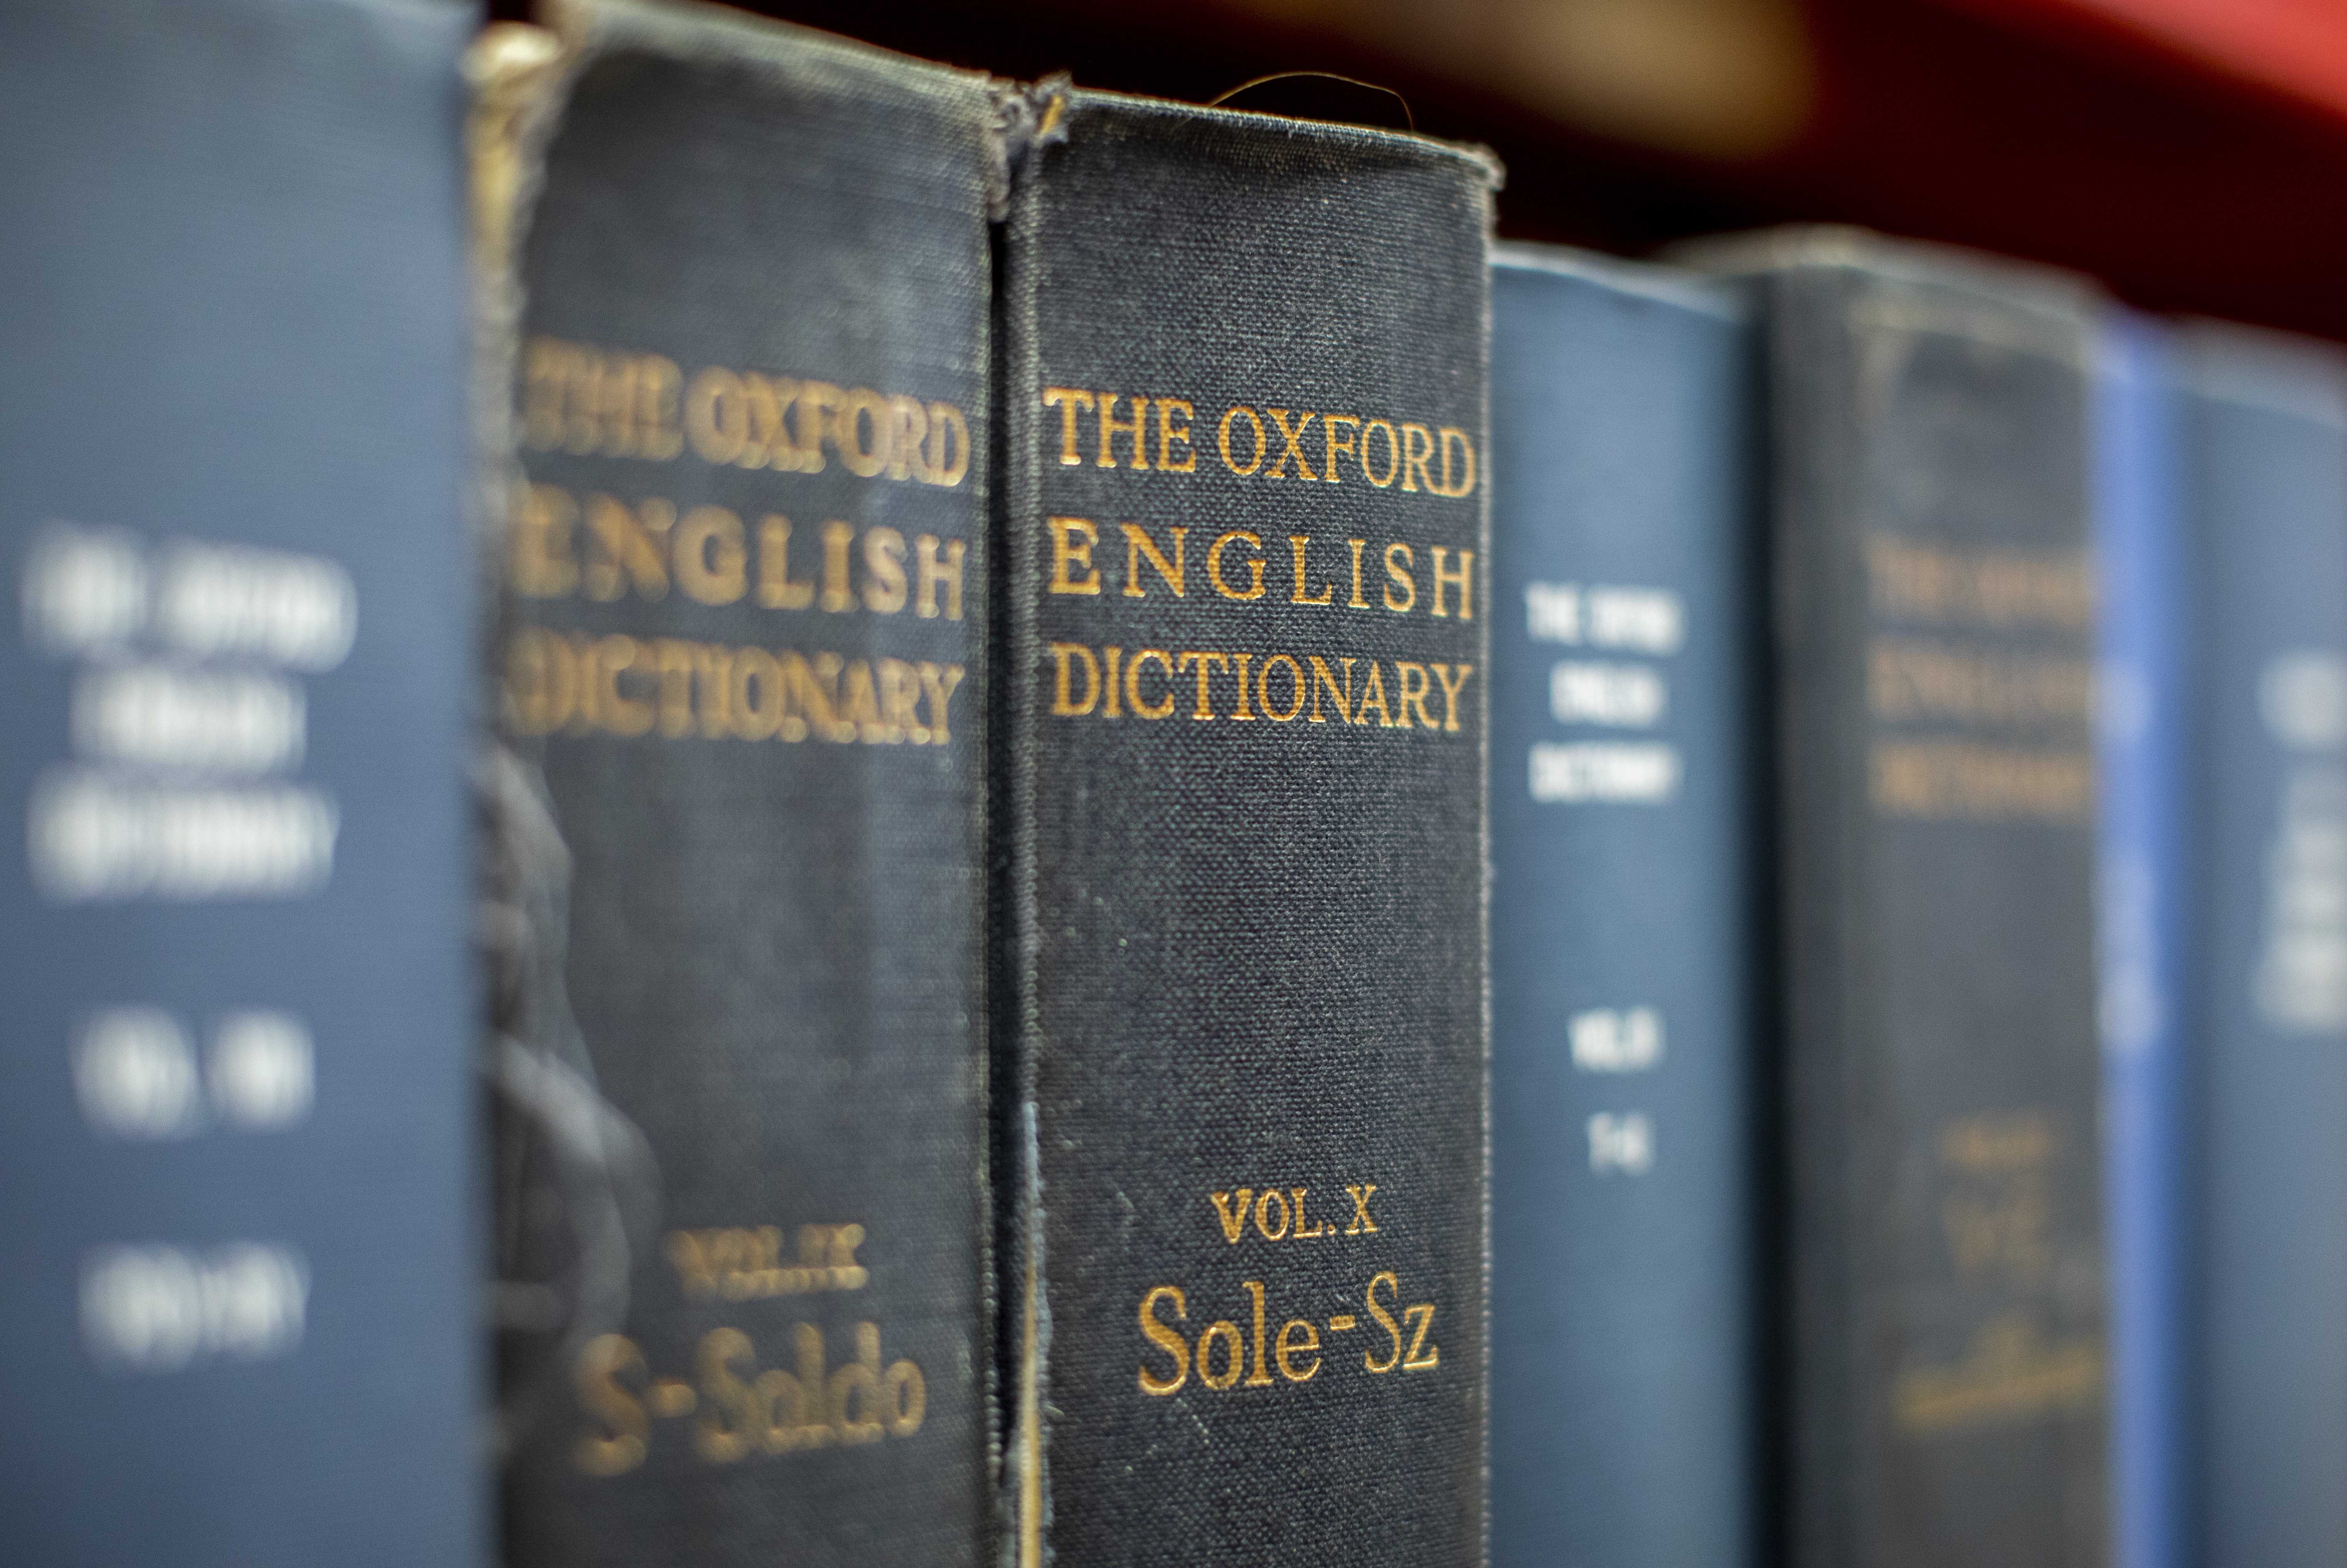 The Oxford English Dictionary in Robarts Library at the University of Toronto, June 19, 2019. Photo by Nick Iwanyshyn